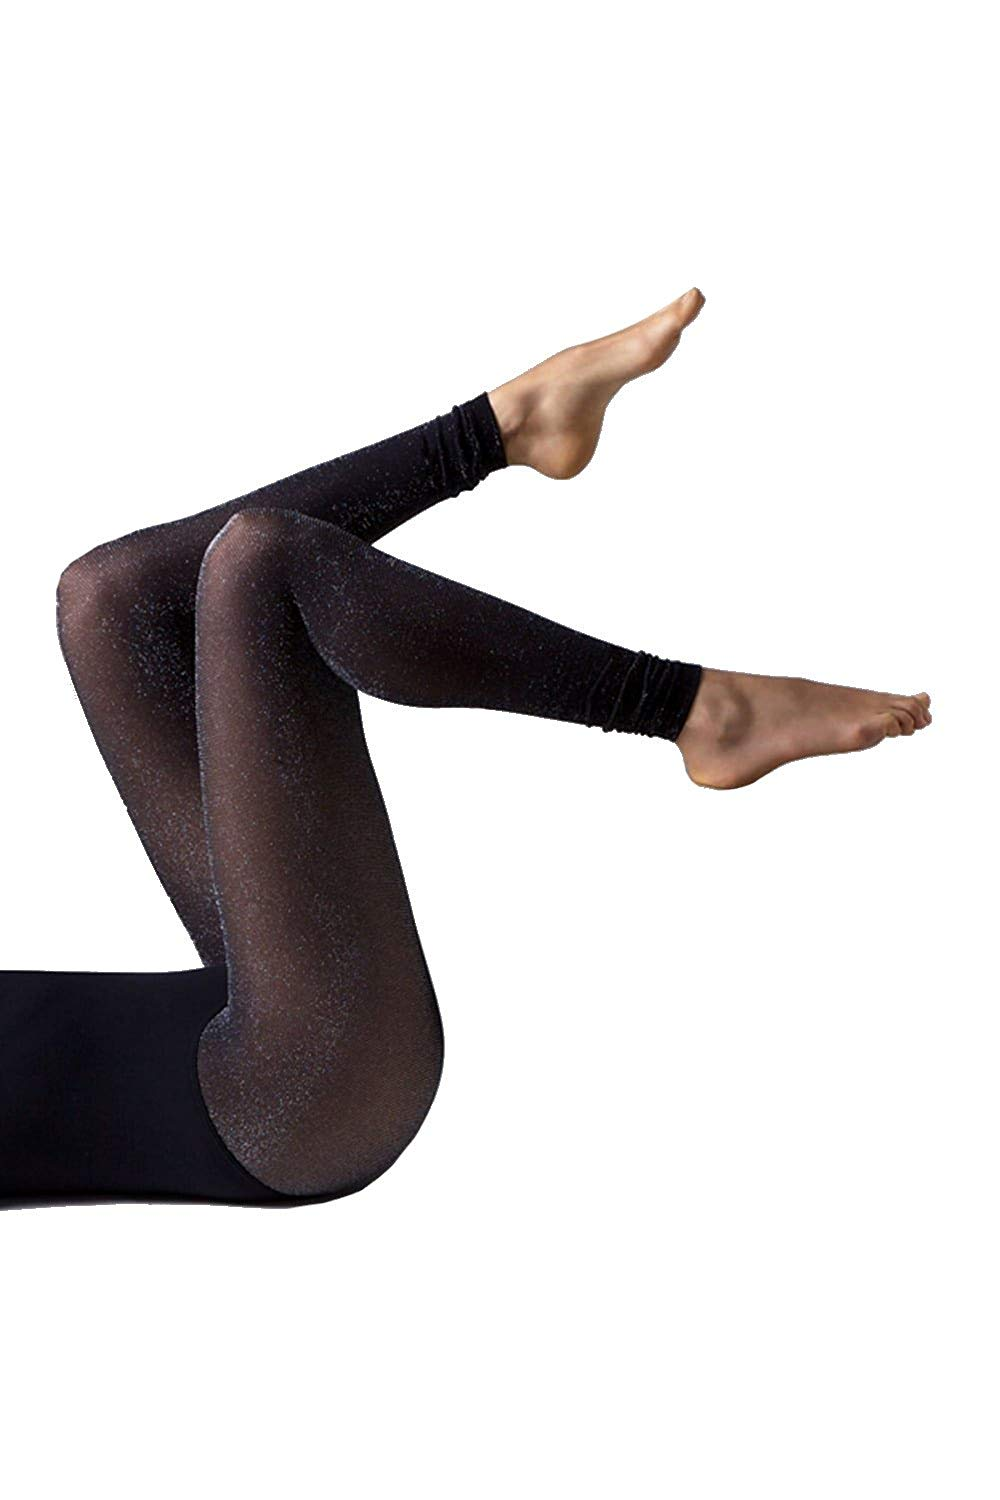 61257d18fa7c4 Cheap Gipsy Tights, find Gipsy Tights deals on line at Alibaba.com